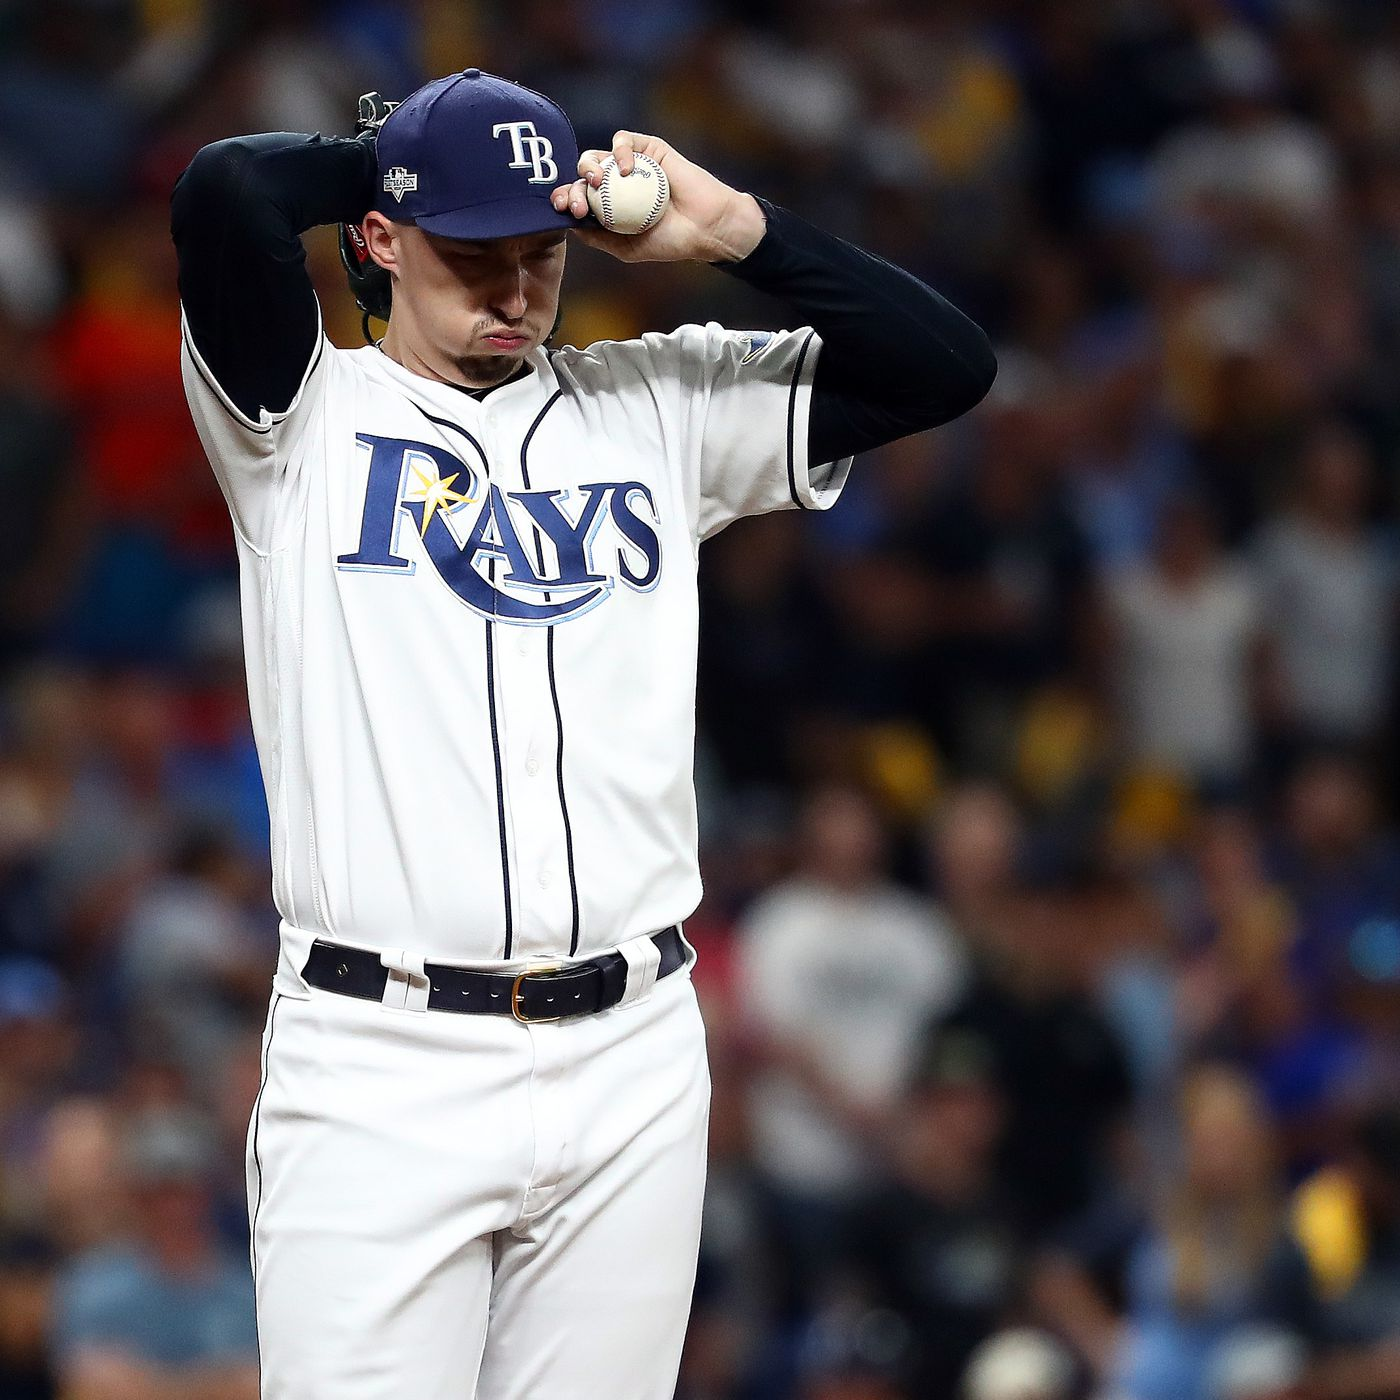 Rays Season Preview: What will Blake Snell be in 2020? - DRaysBay